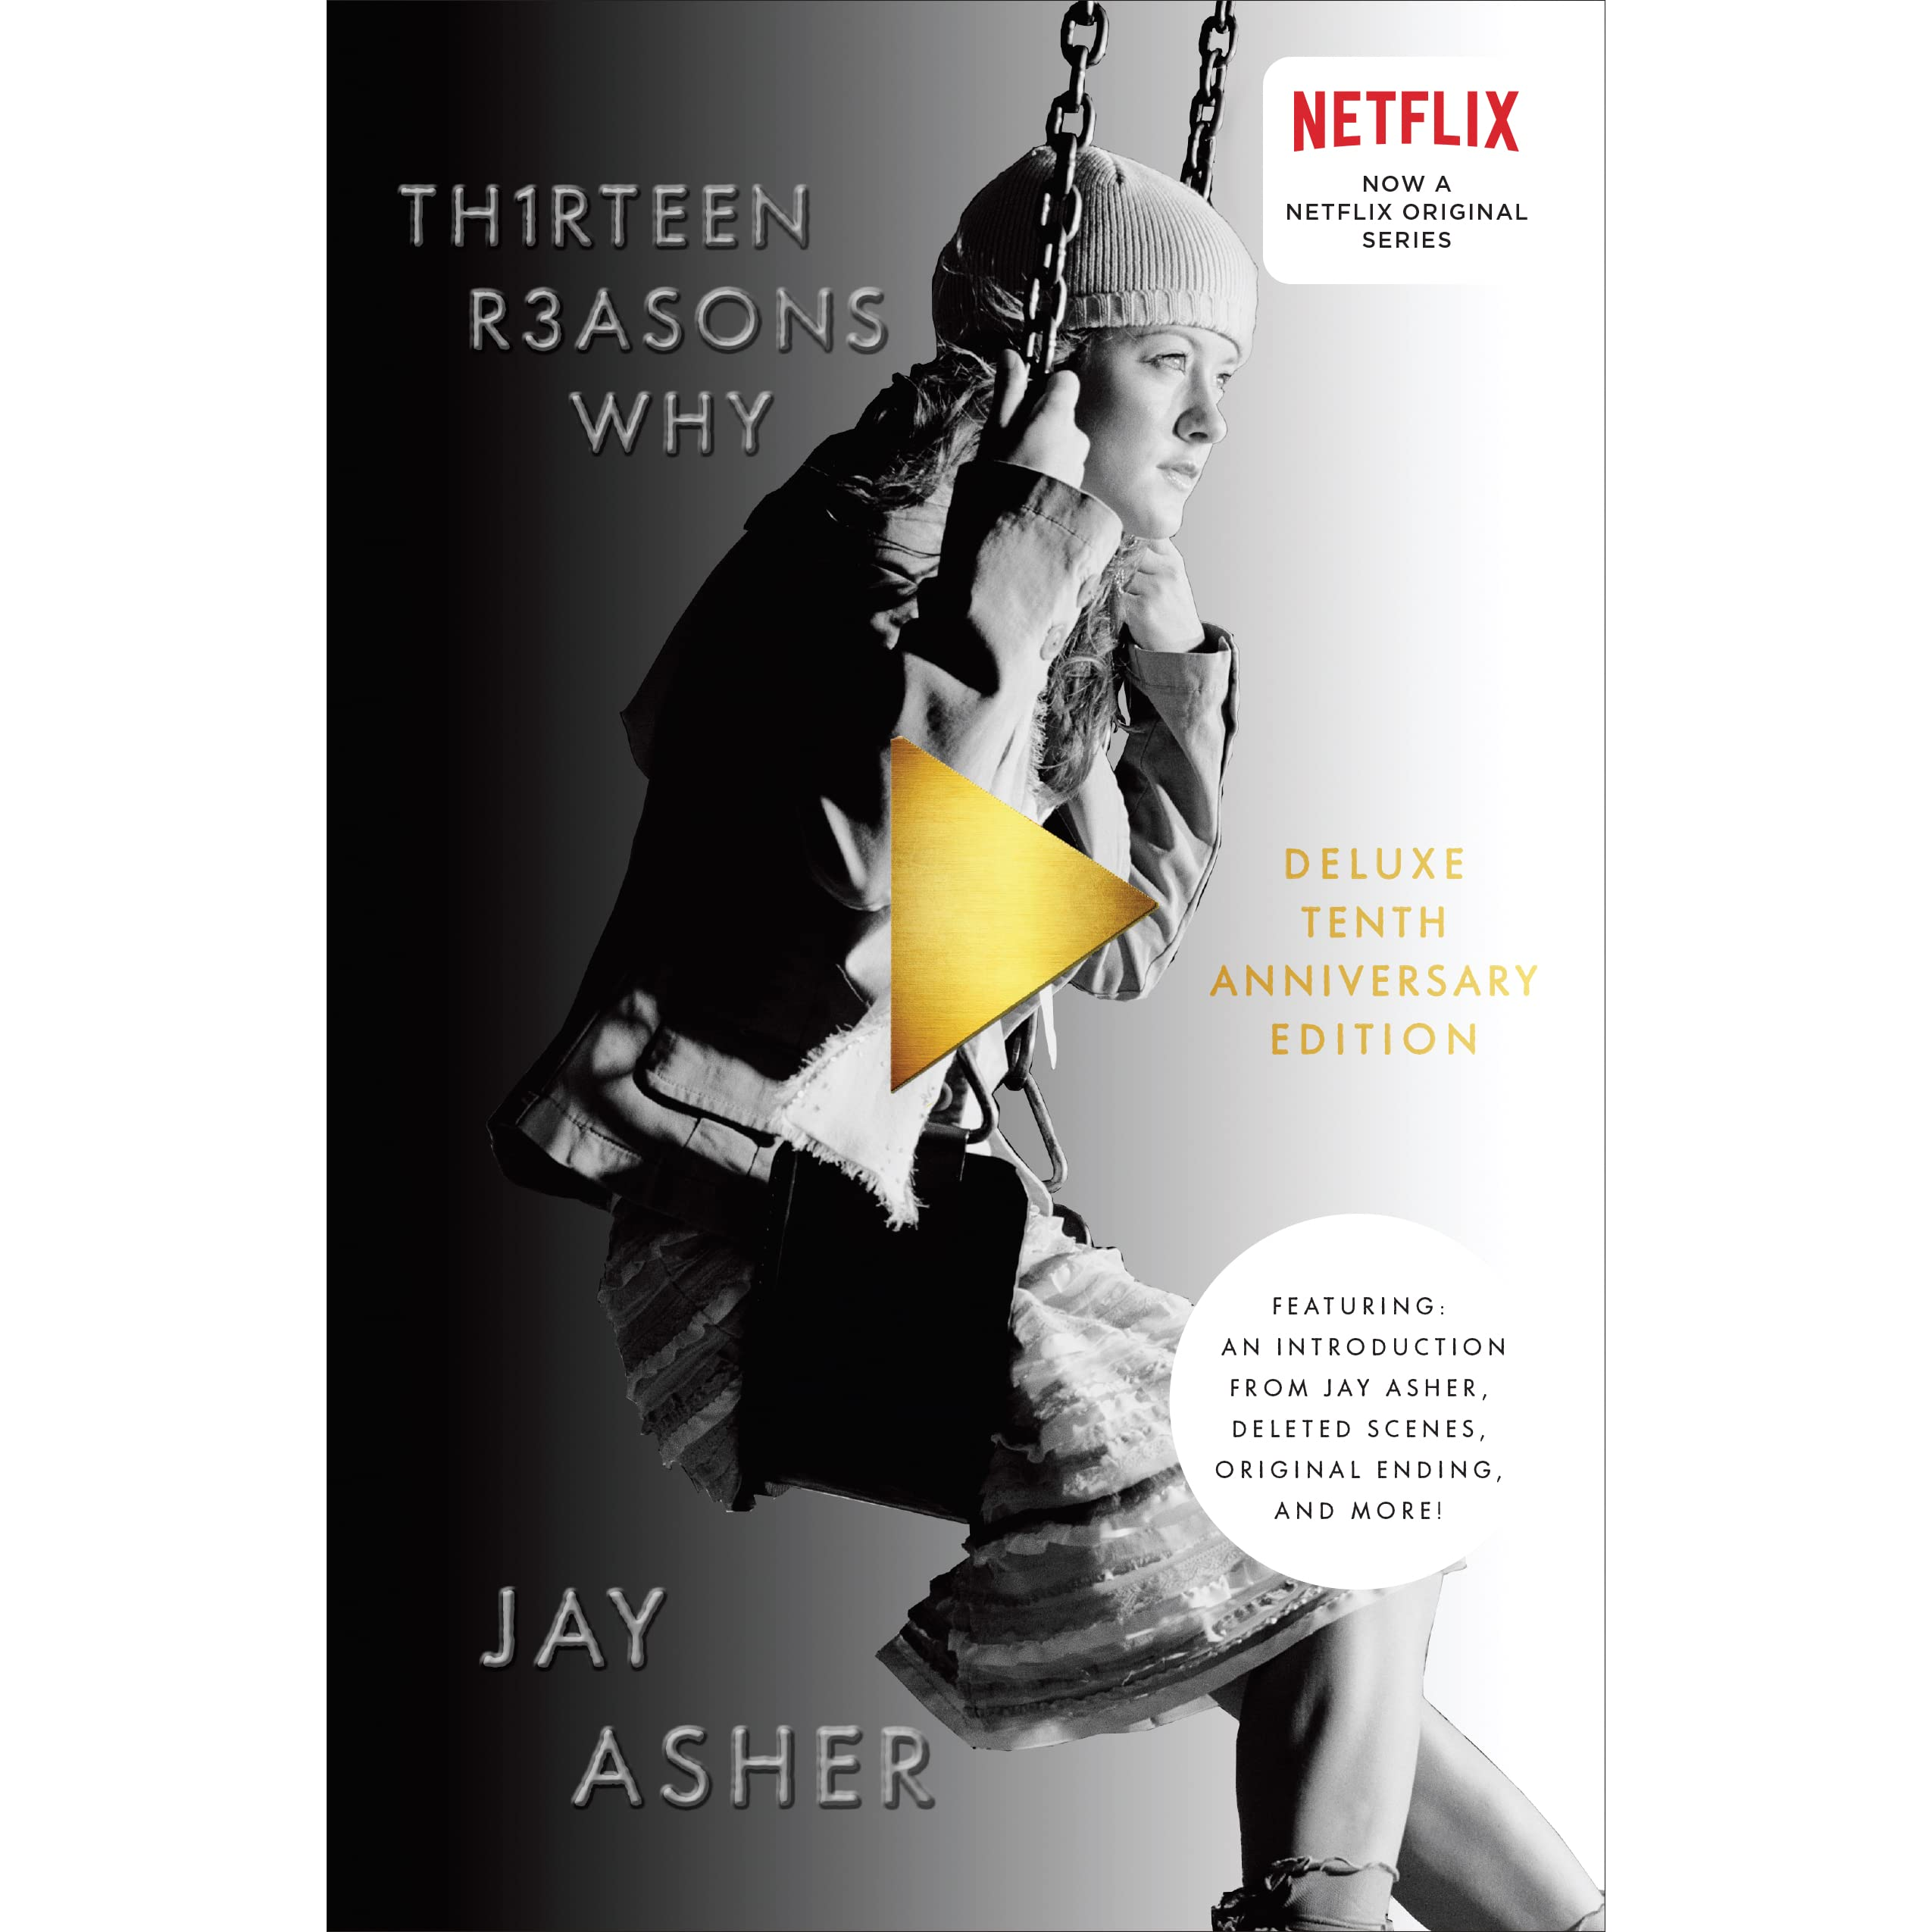 13 Reasons Why Libro Español Thirteen Reasons Why By Jay Asher